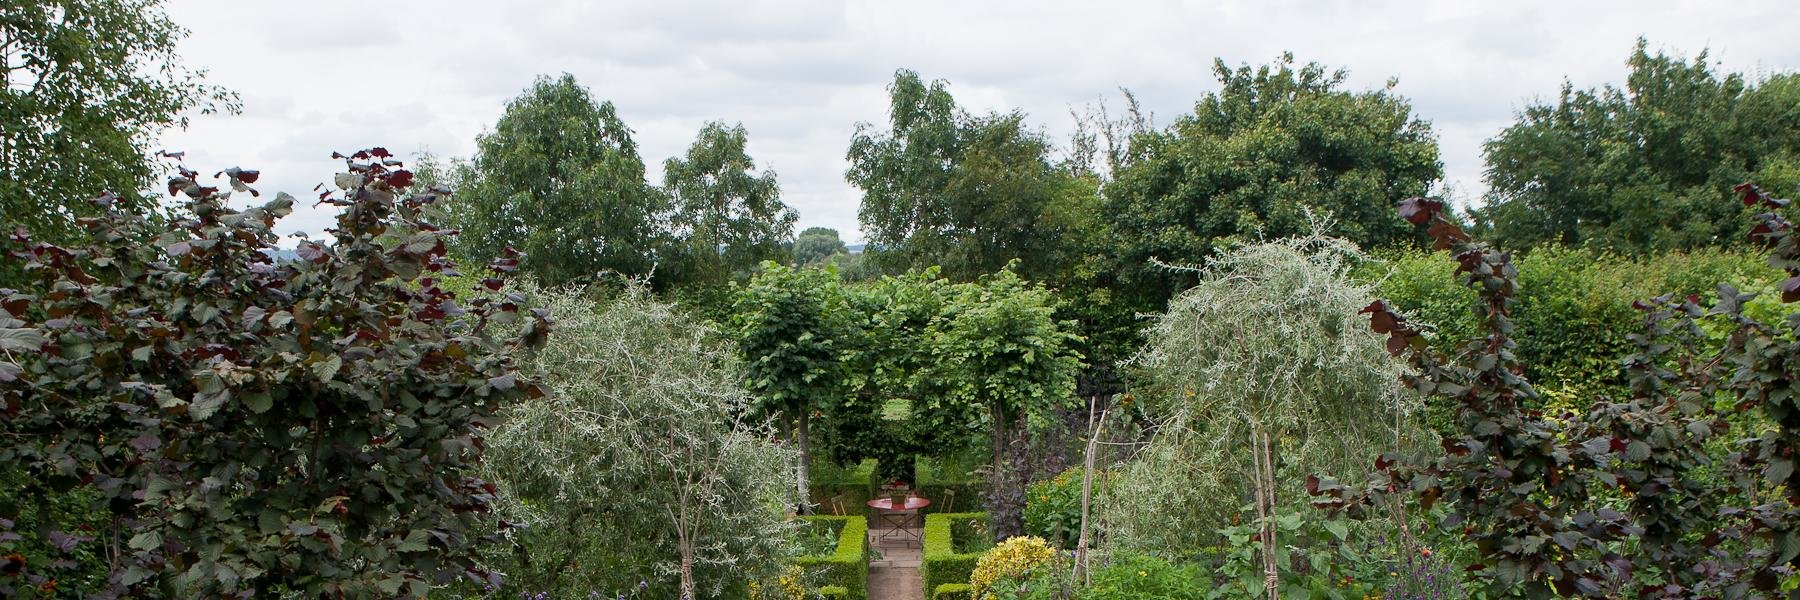 Gardeners World starts again tonight at 8.30 on BBC2. Be Happy. thetimes.co.uk/article/garden…